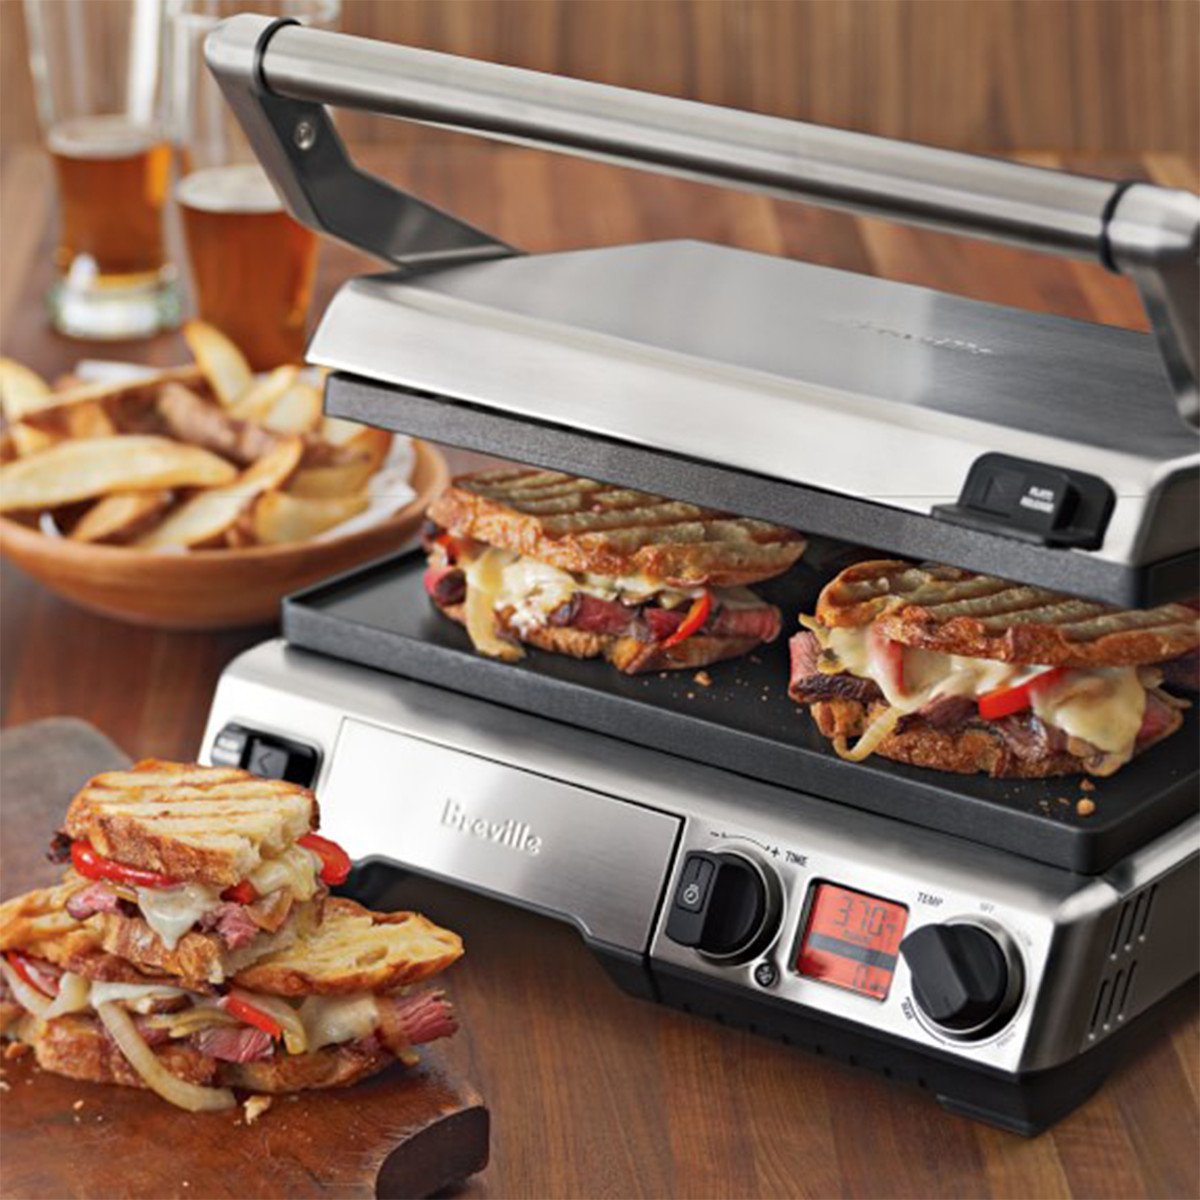 Small smart grill making panini sandwiches photo